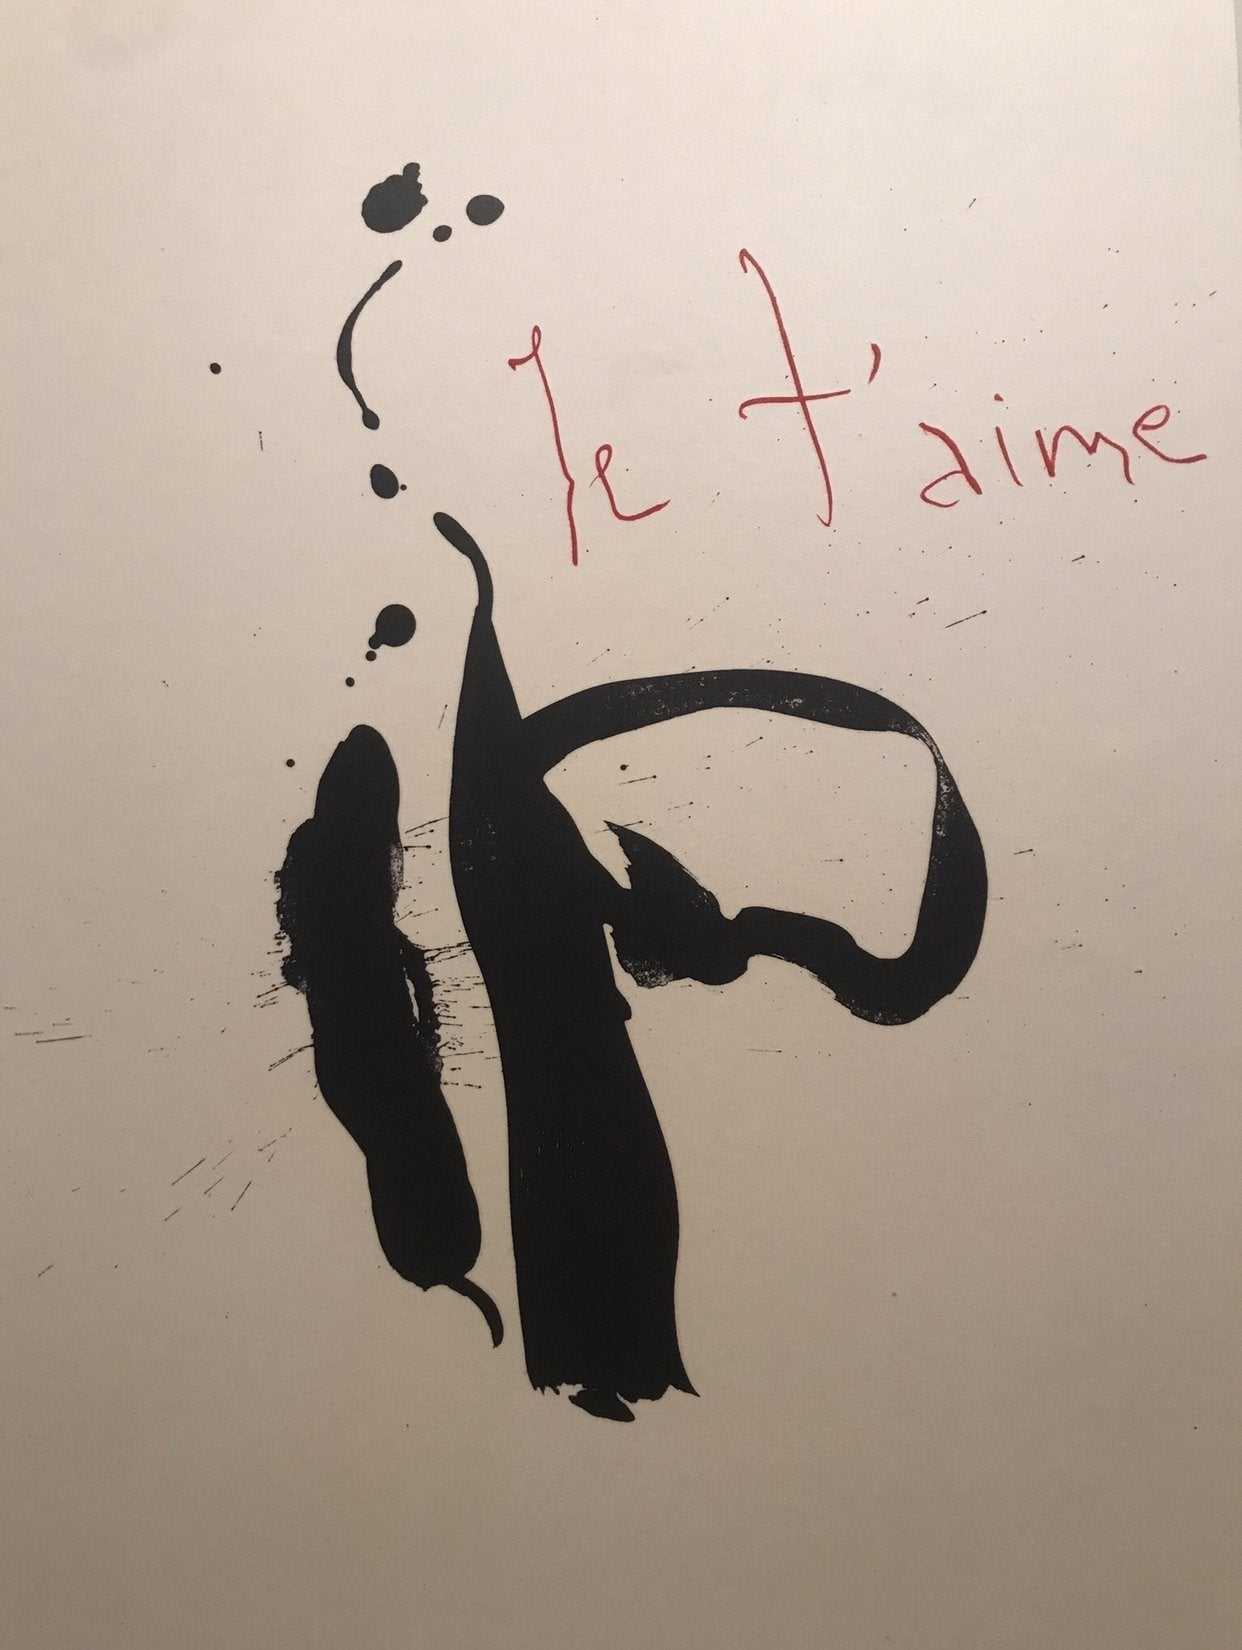 Three Poems - Red Samurai/Je t'aime by Robert Motherwell